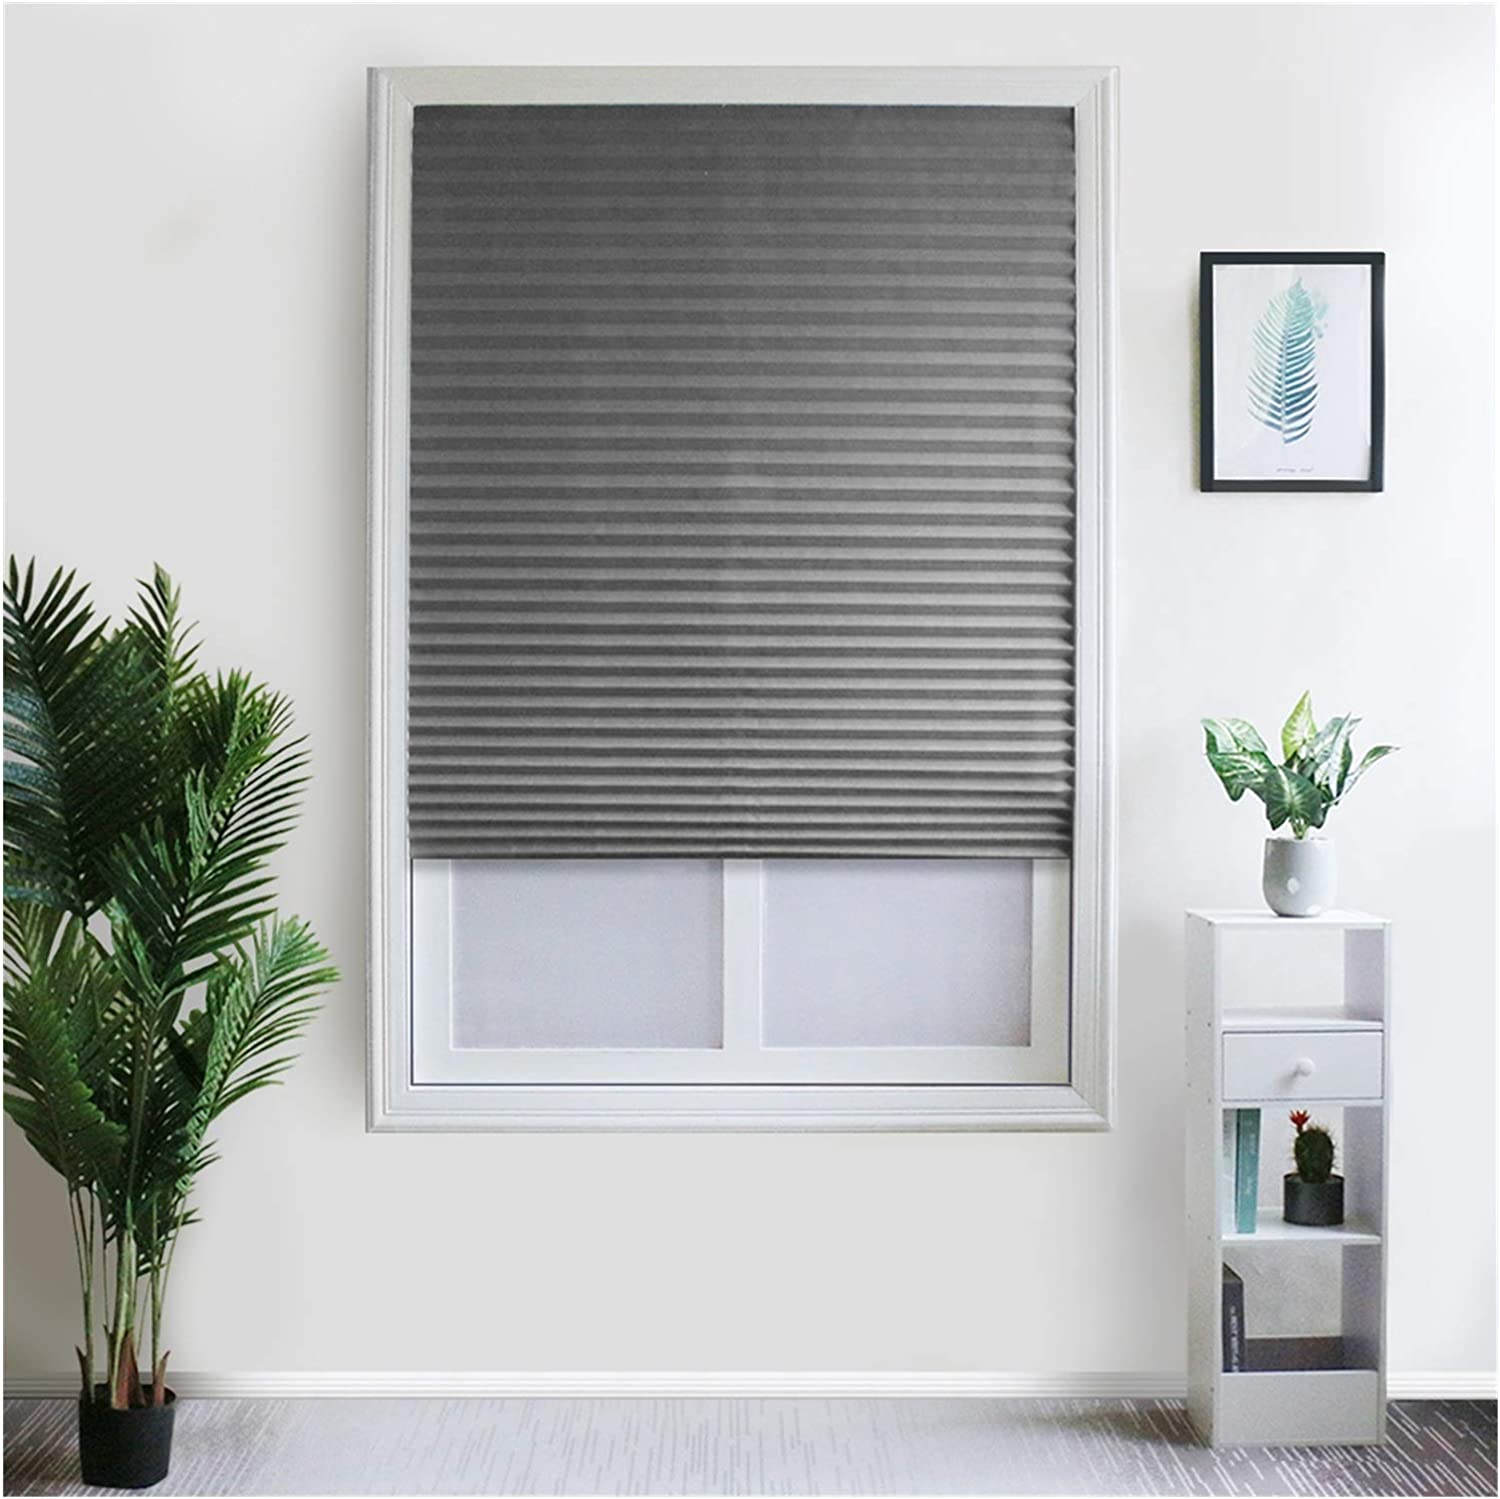 KJBGS Blinds Easy Lift Cordless Pleated Light Blocking Shade Window Blinds Apartment Home Use Window Curtain Blackout Beautiful and Durable (Color : Blinds Grey, Size : 90 W X 150 L cm)